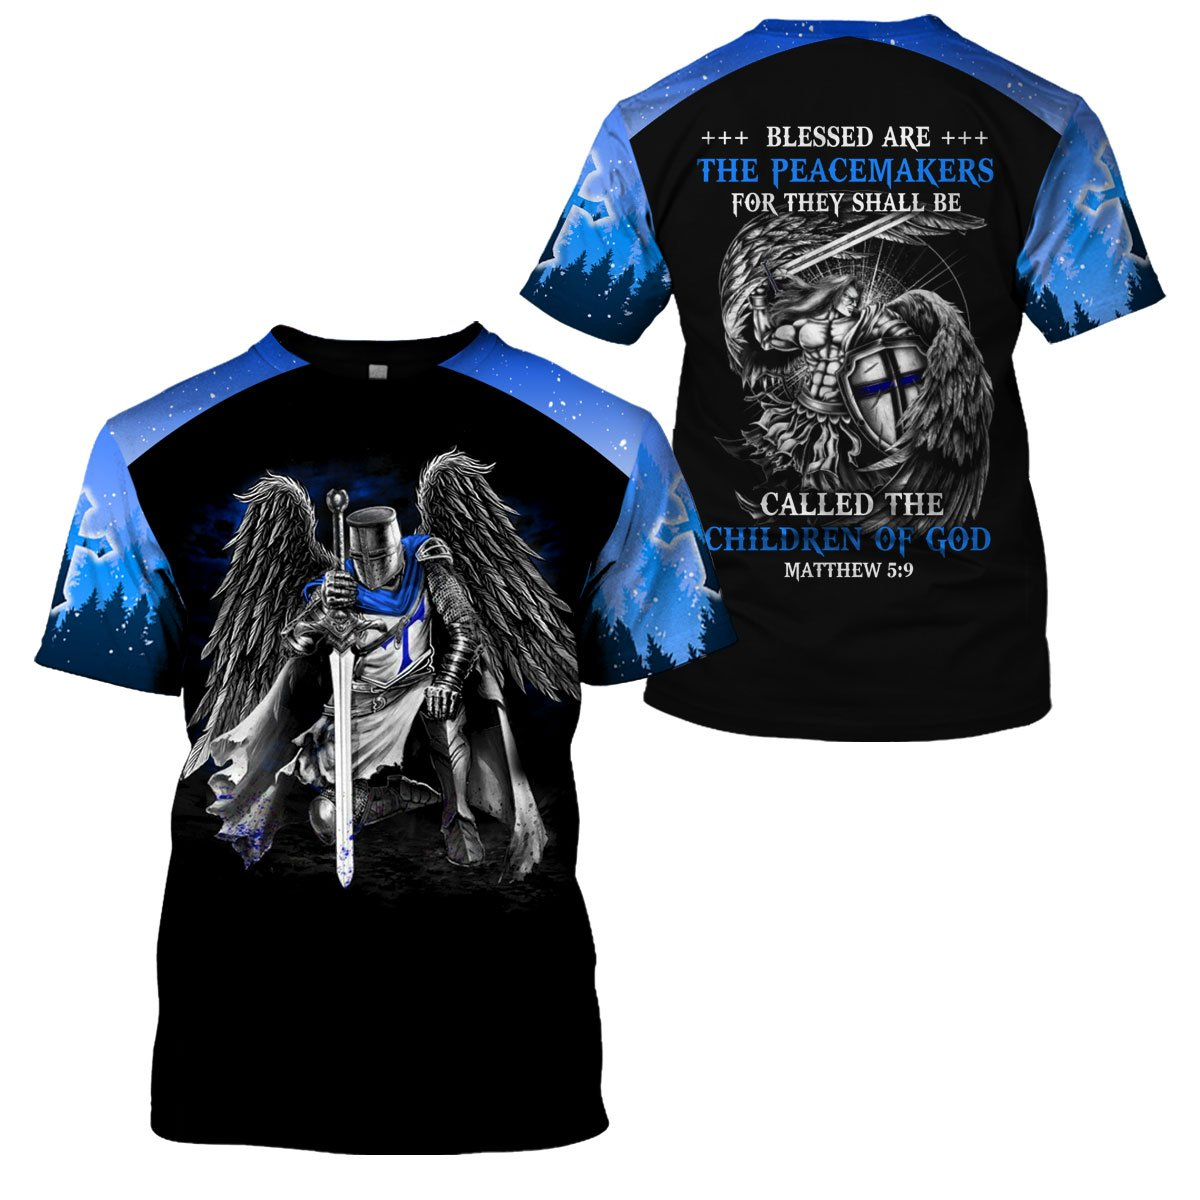 3D Thin Blue Line Apparel - Peacemaker Children Of God - 4zOutfitters Merchandise